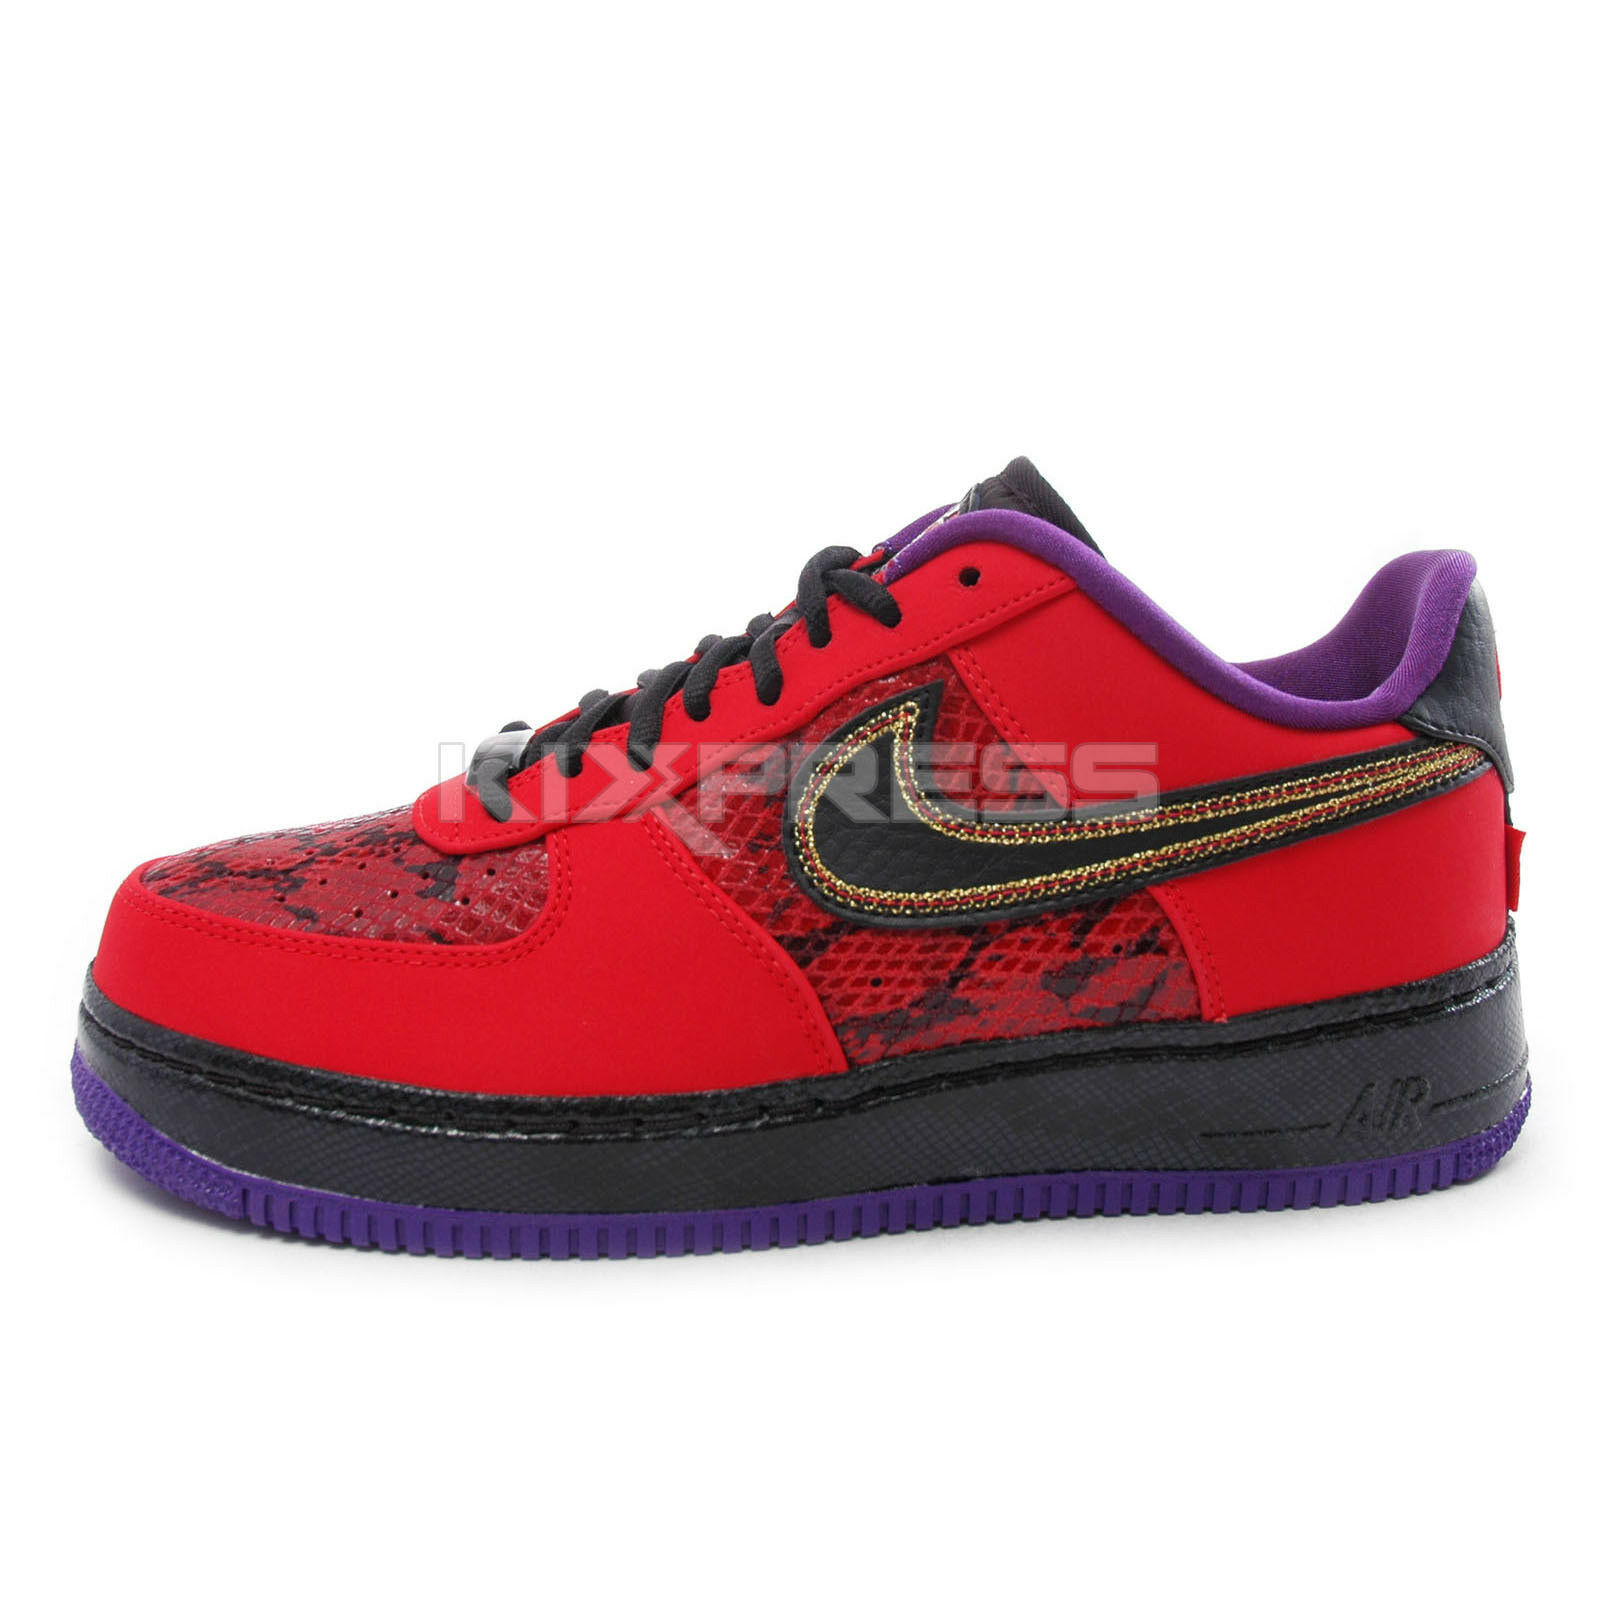 Nike Air Force 1 Low NG CMFT LW [555106-600] NSW Year Of The Snake Pack